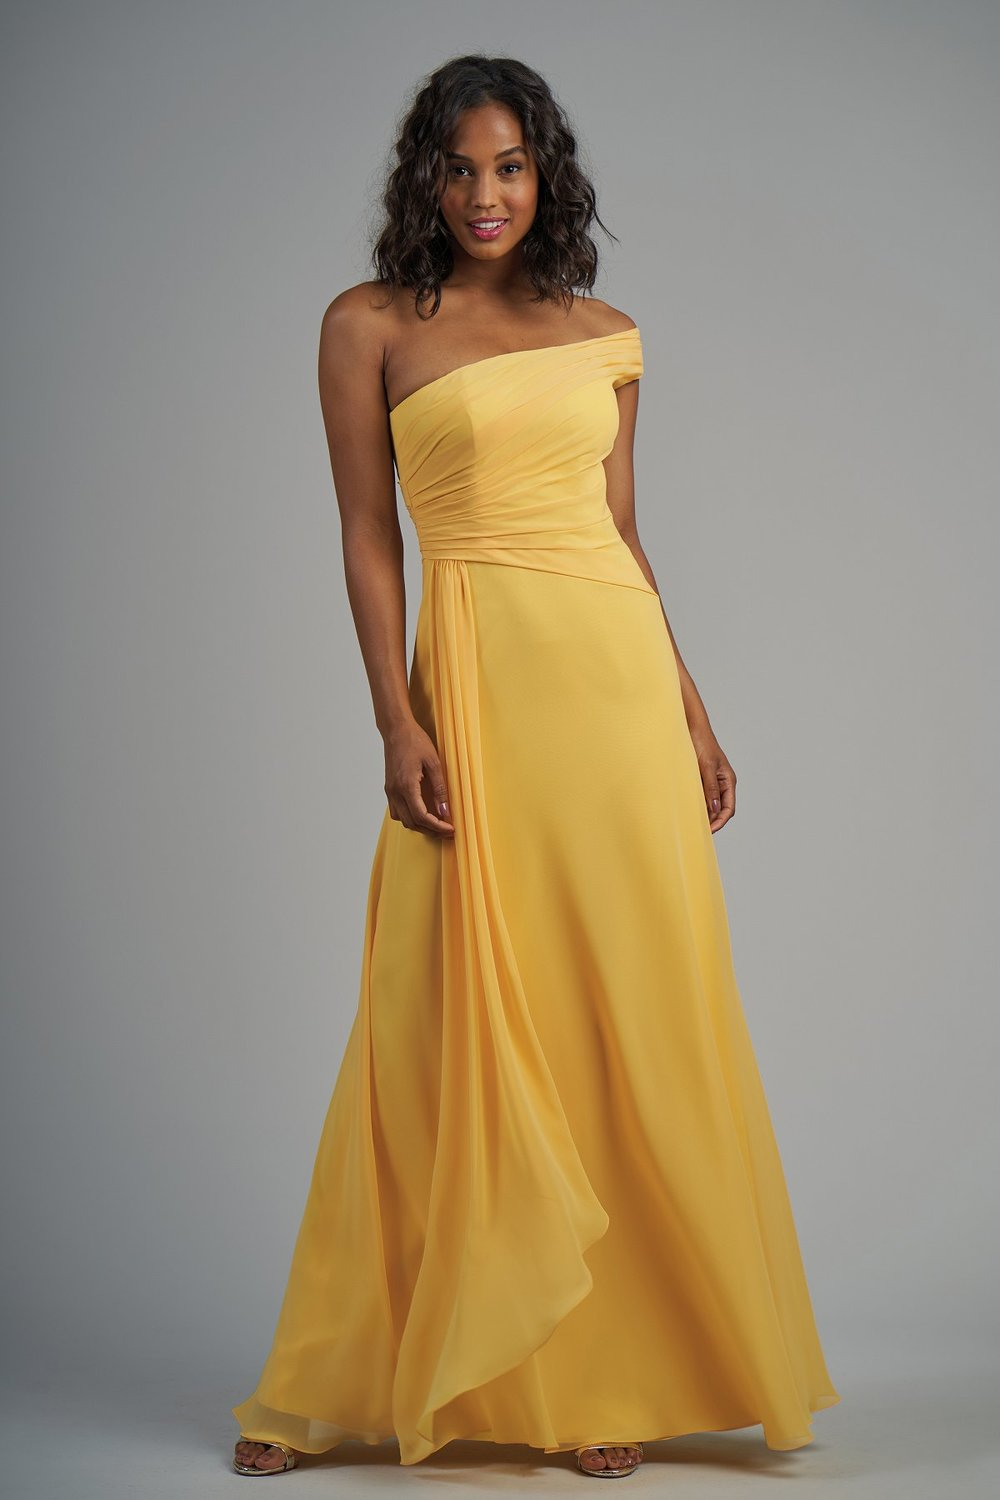 B213006 -  Pretty poly chiffon floor length bridesmaid dress with a beautiful one-shoulder neckline. Detailed gathers on the bodice and gathered flowy fabric on one side of the skirt.    Available in 60 colors